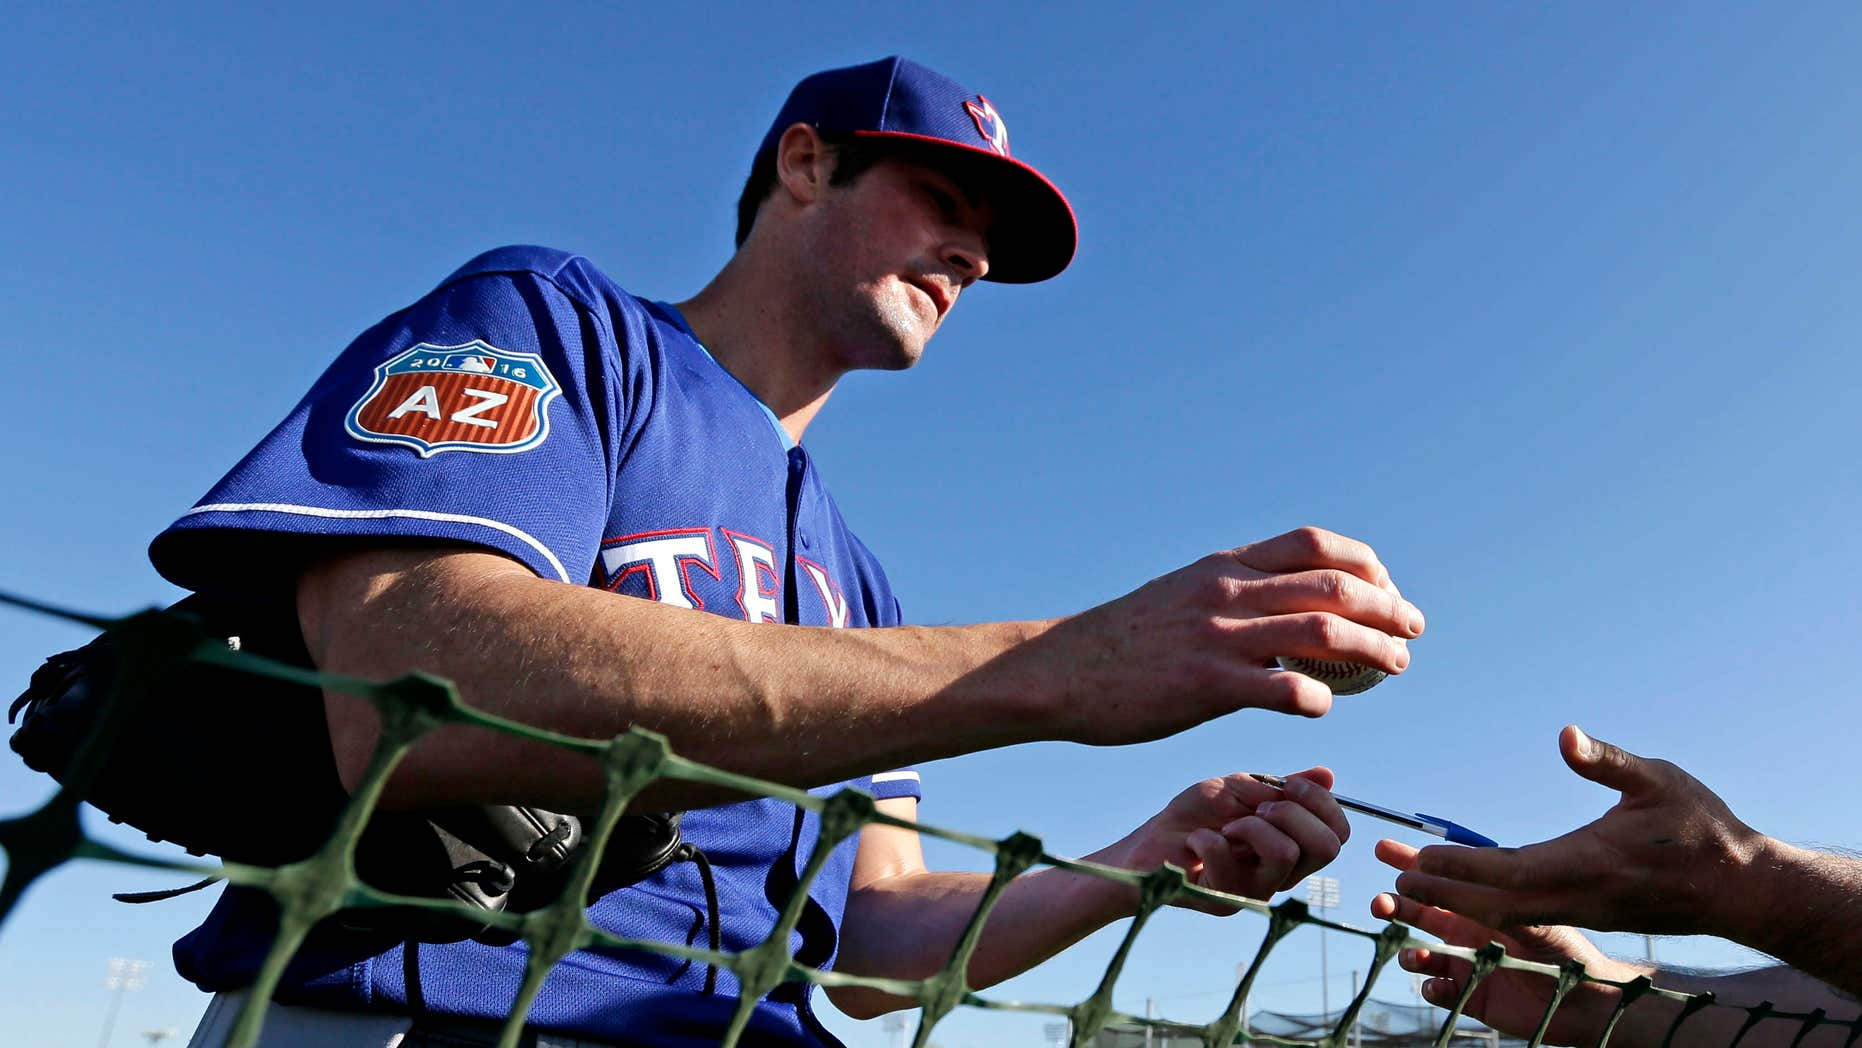 FILE - In this Feb. 21, 2016, file photo, Texas Rangers pitcher Cole Hamels signs autographs during spring training baseball practice, in Surprise, Ariz.